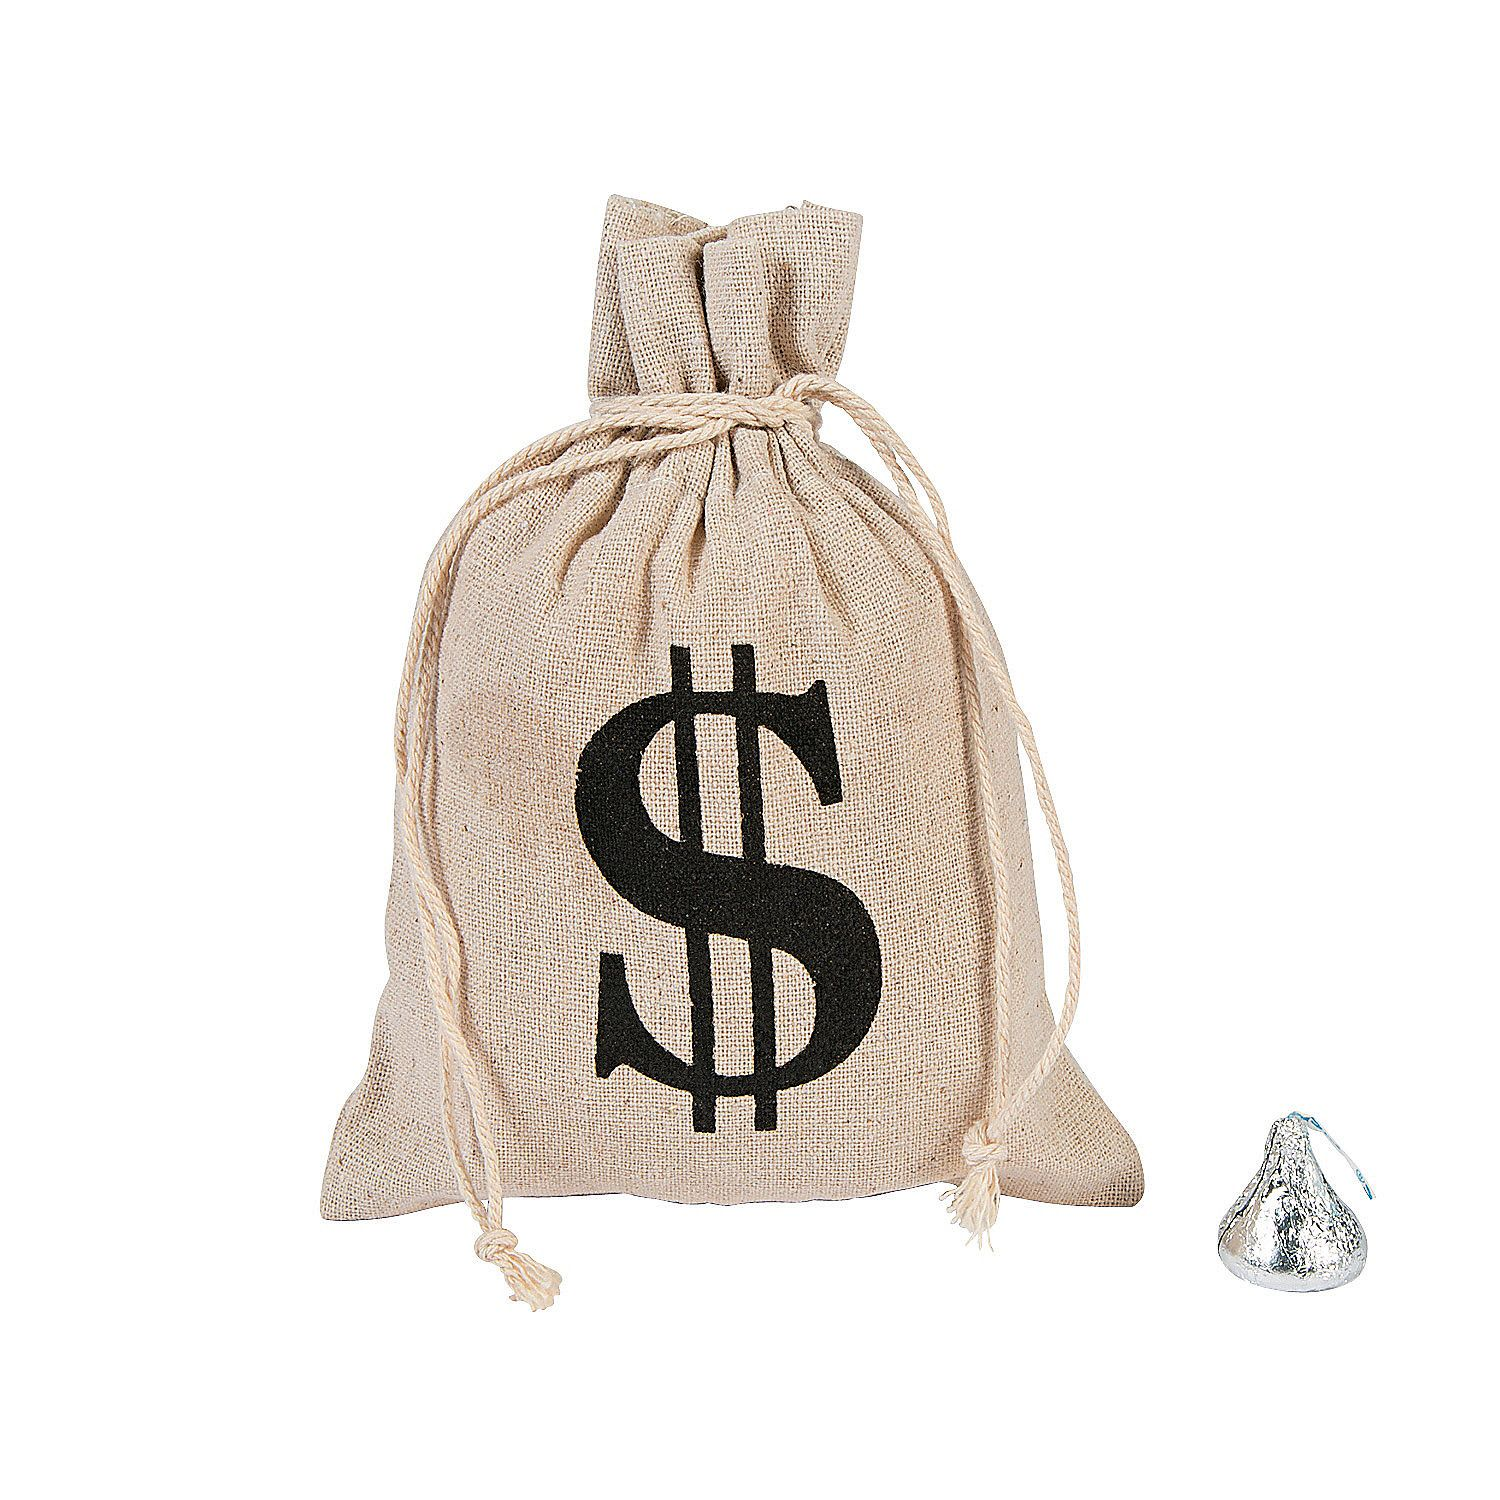 Pirates Loot Bag Filled With Coins And Jewellery Halloween Fancy Dress Prop